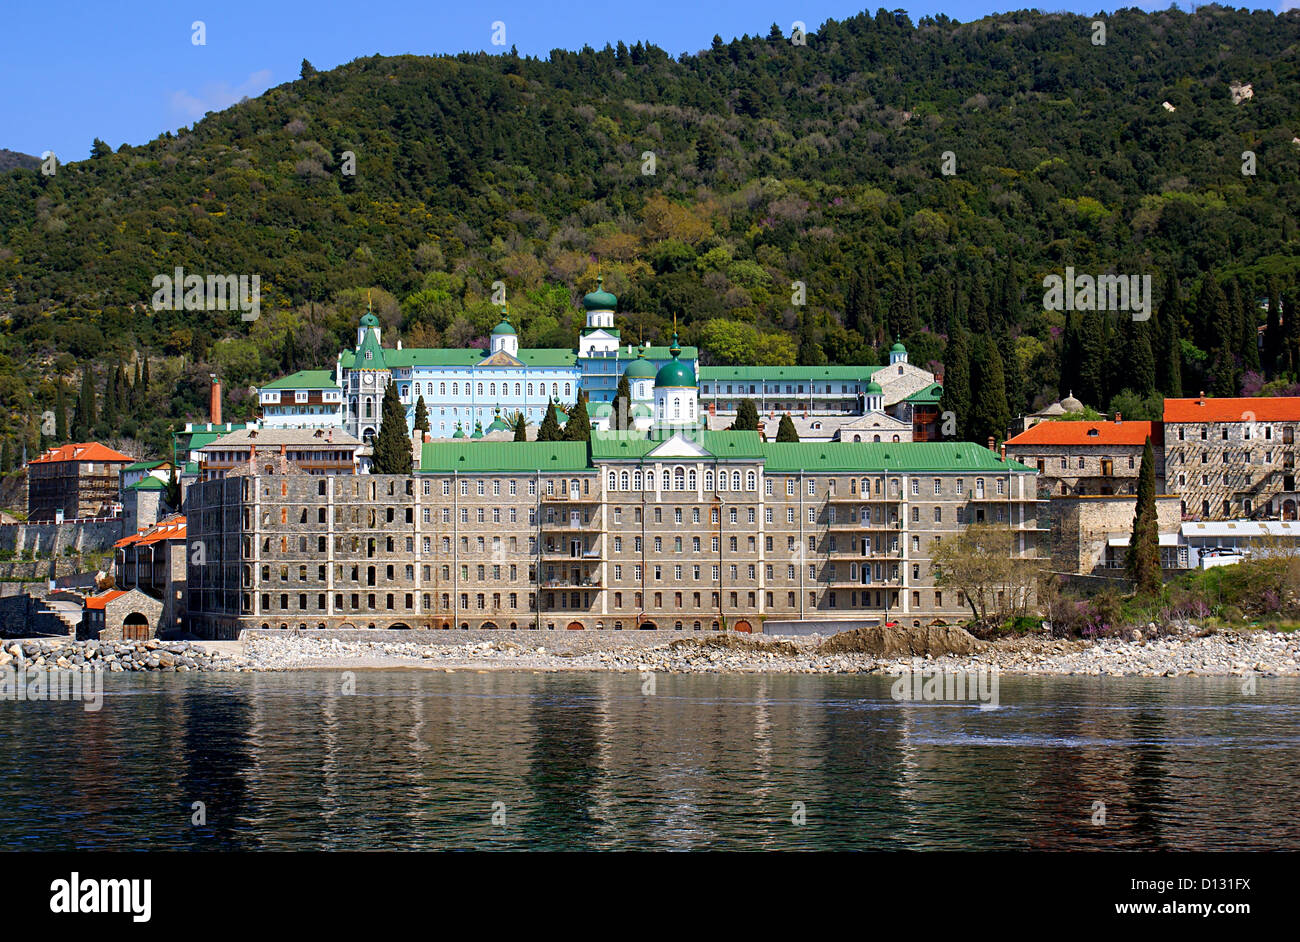 Russian monastery of the Holy Panteleimon at Athos, Greece Stock Photo